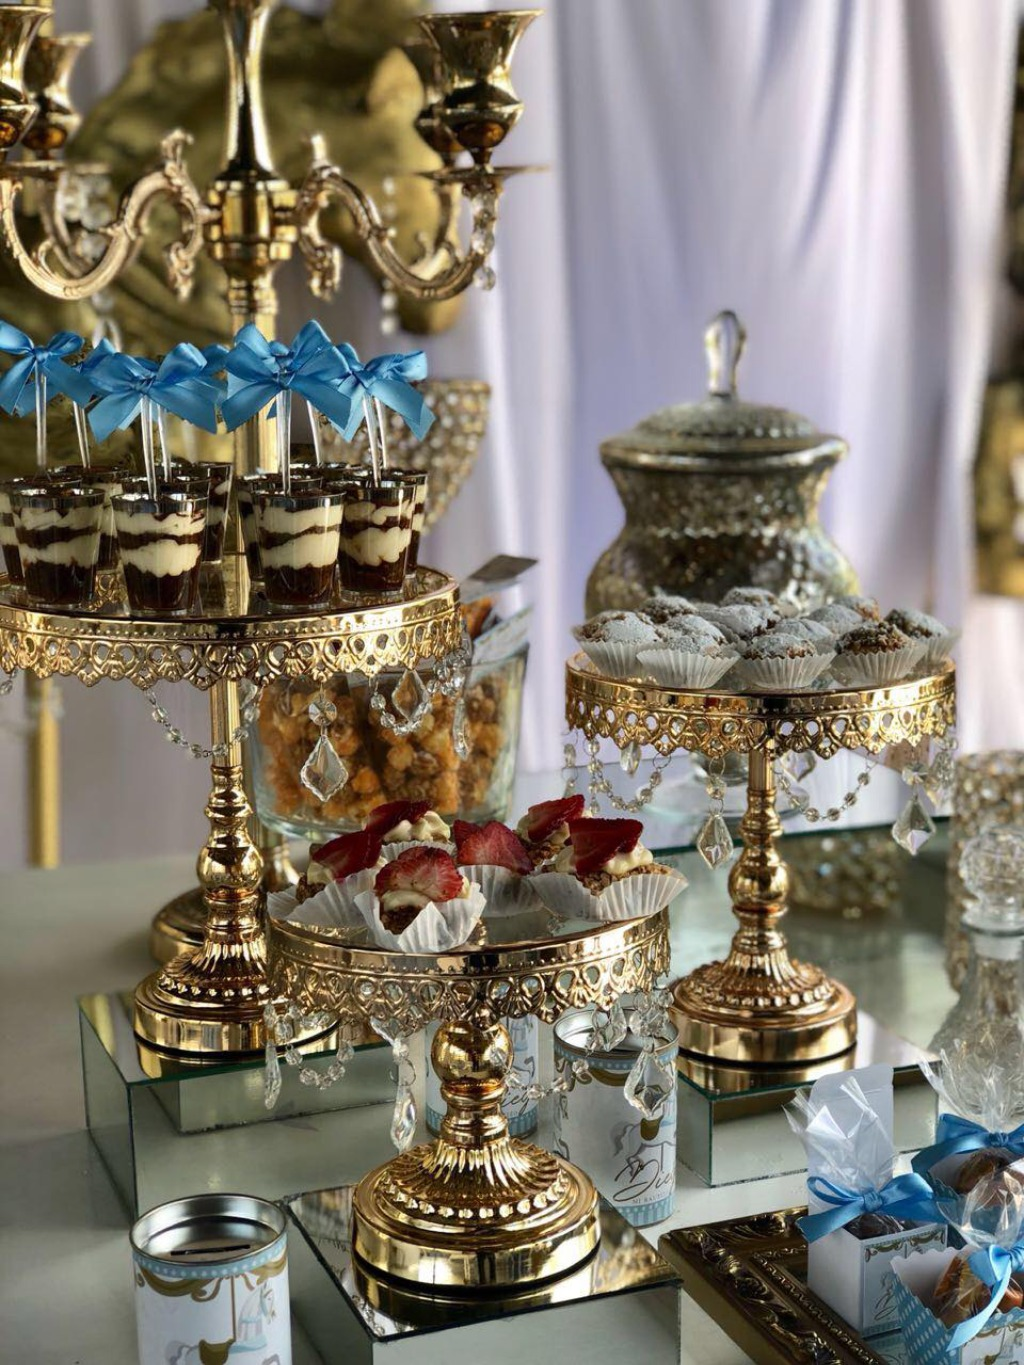 Shiny Gold Chandelier Dessert Stands...Opulent Treasures collection of cake stands, dessert stands, cupcake stands & more can help